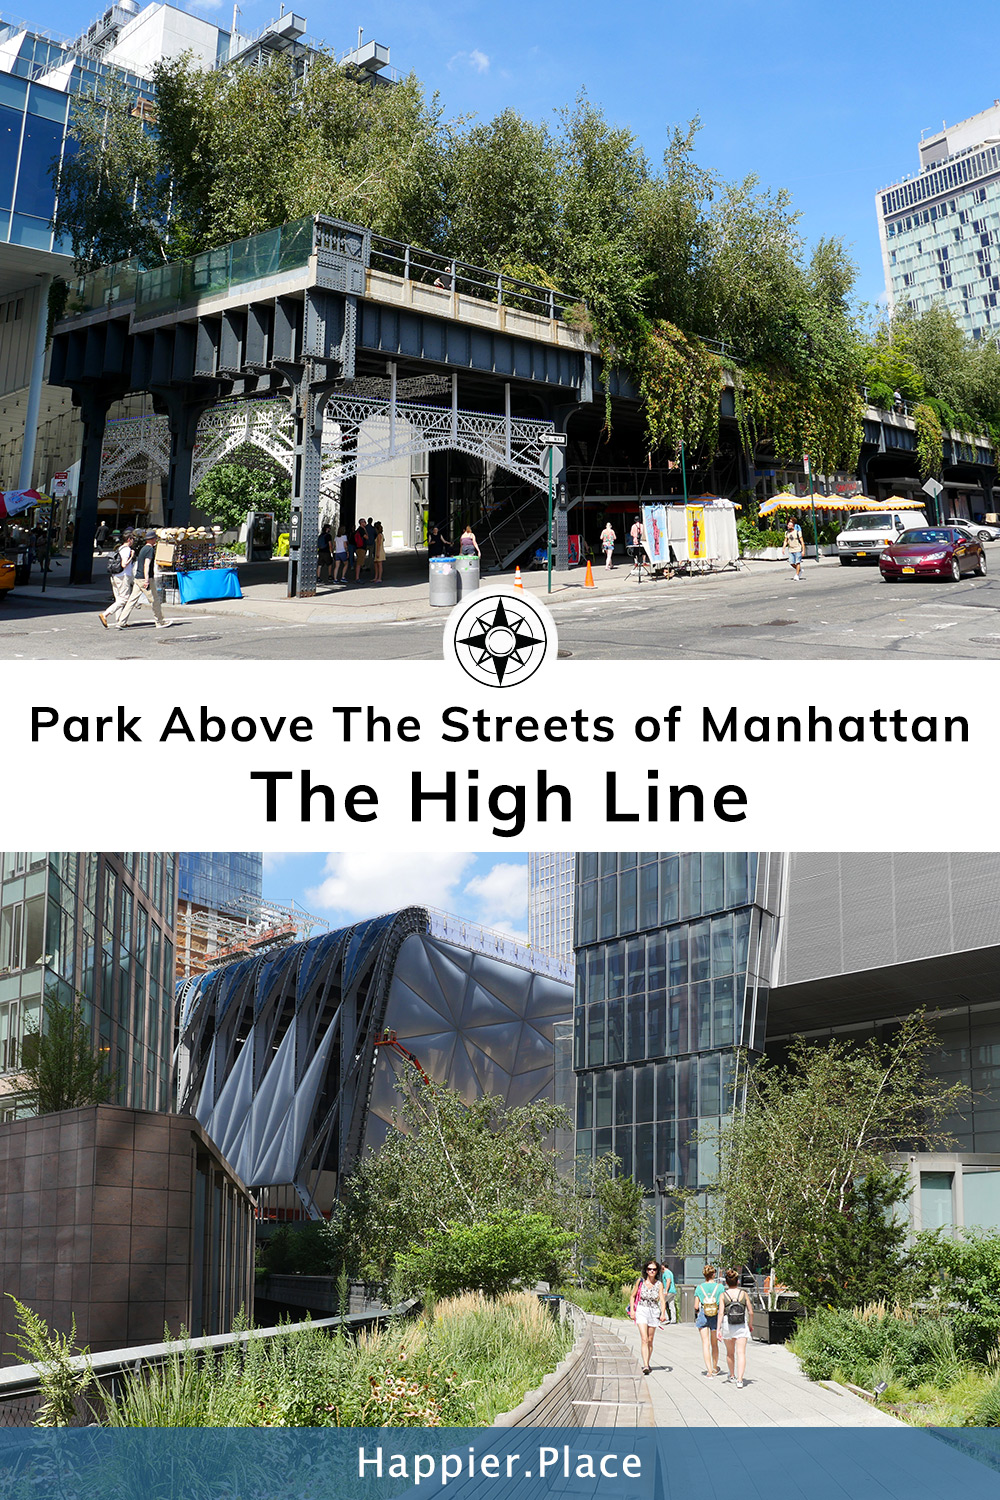 Above The Rest: The High Line - Elevated Park in NYC